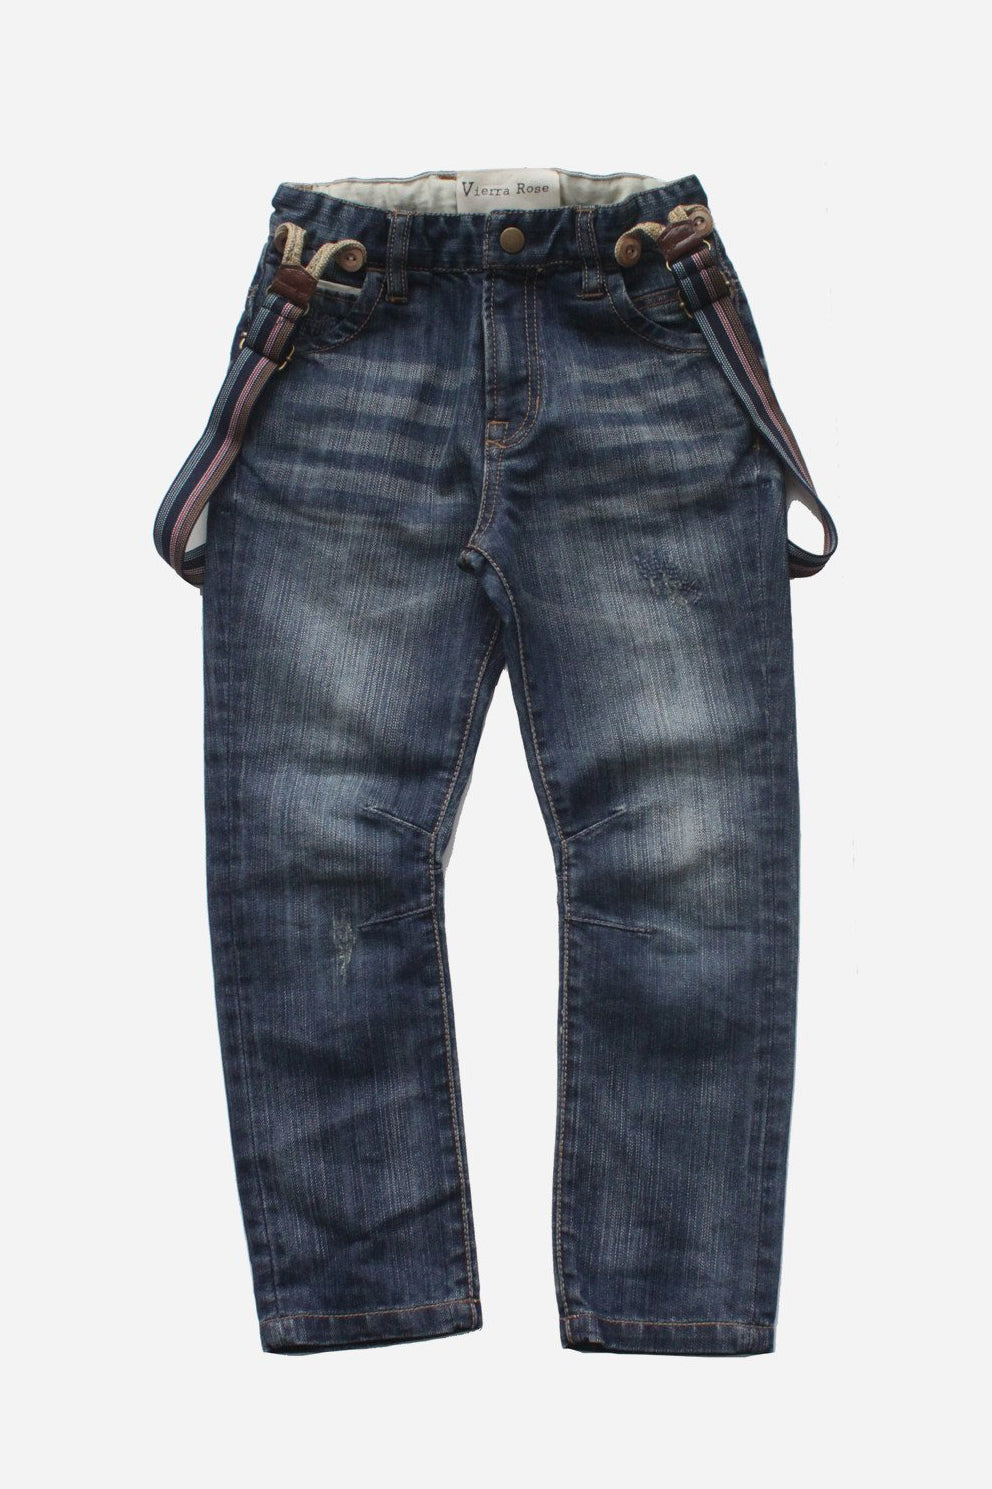 Vierra Rose Zack Boys Jeans with Suspenders